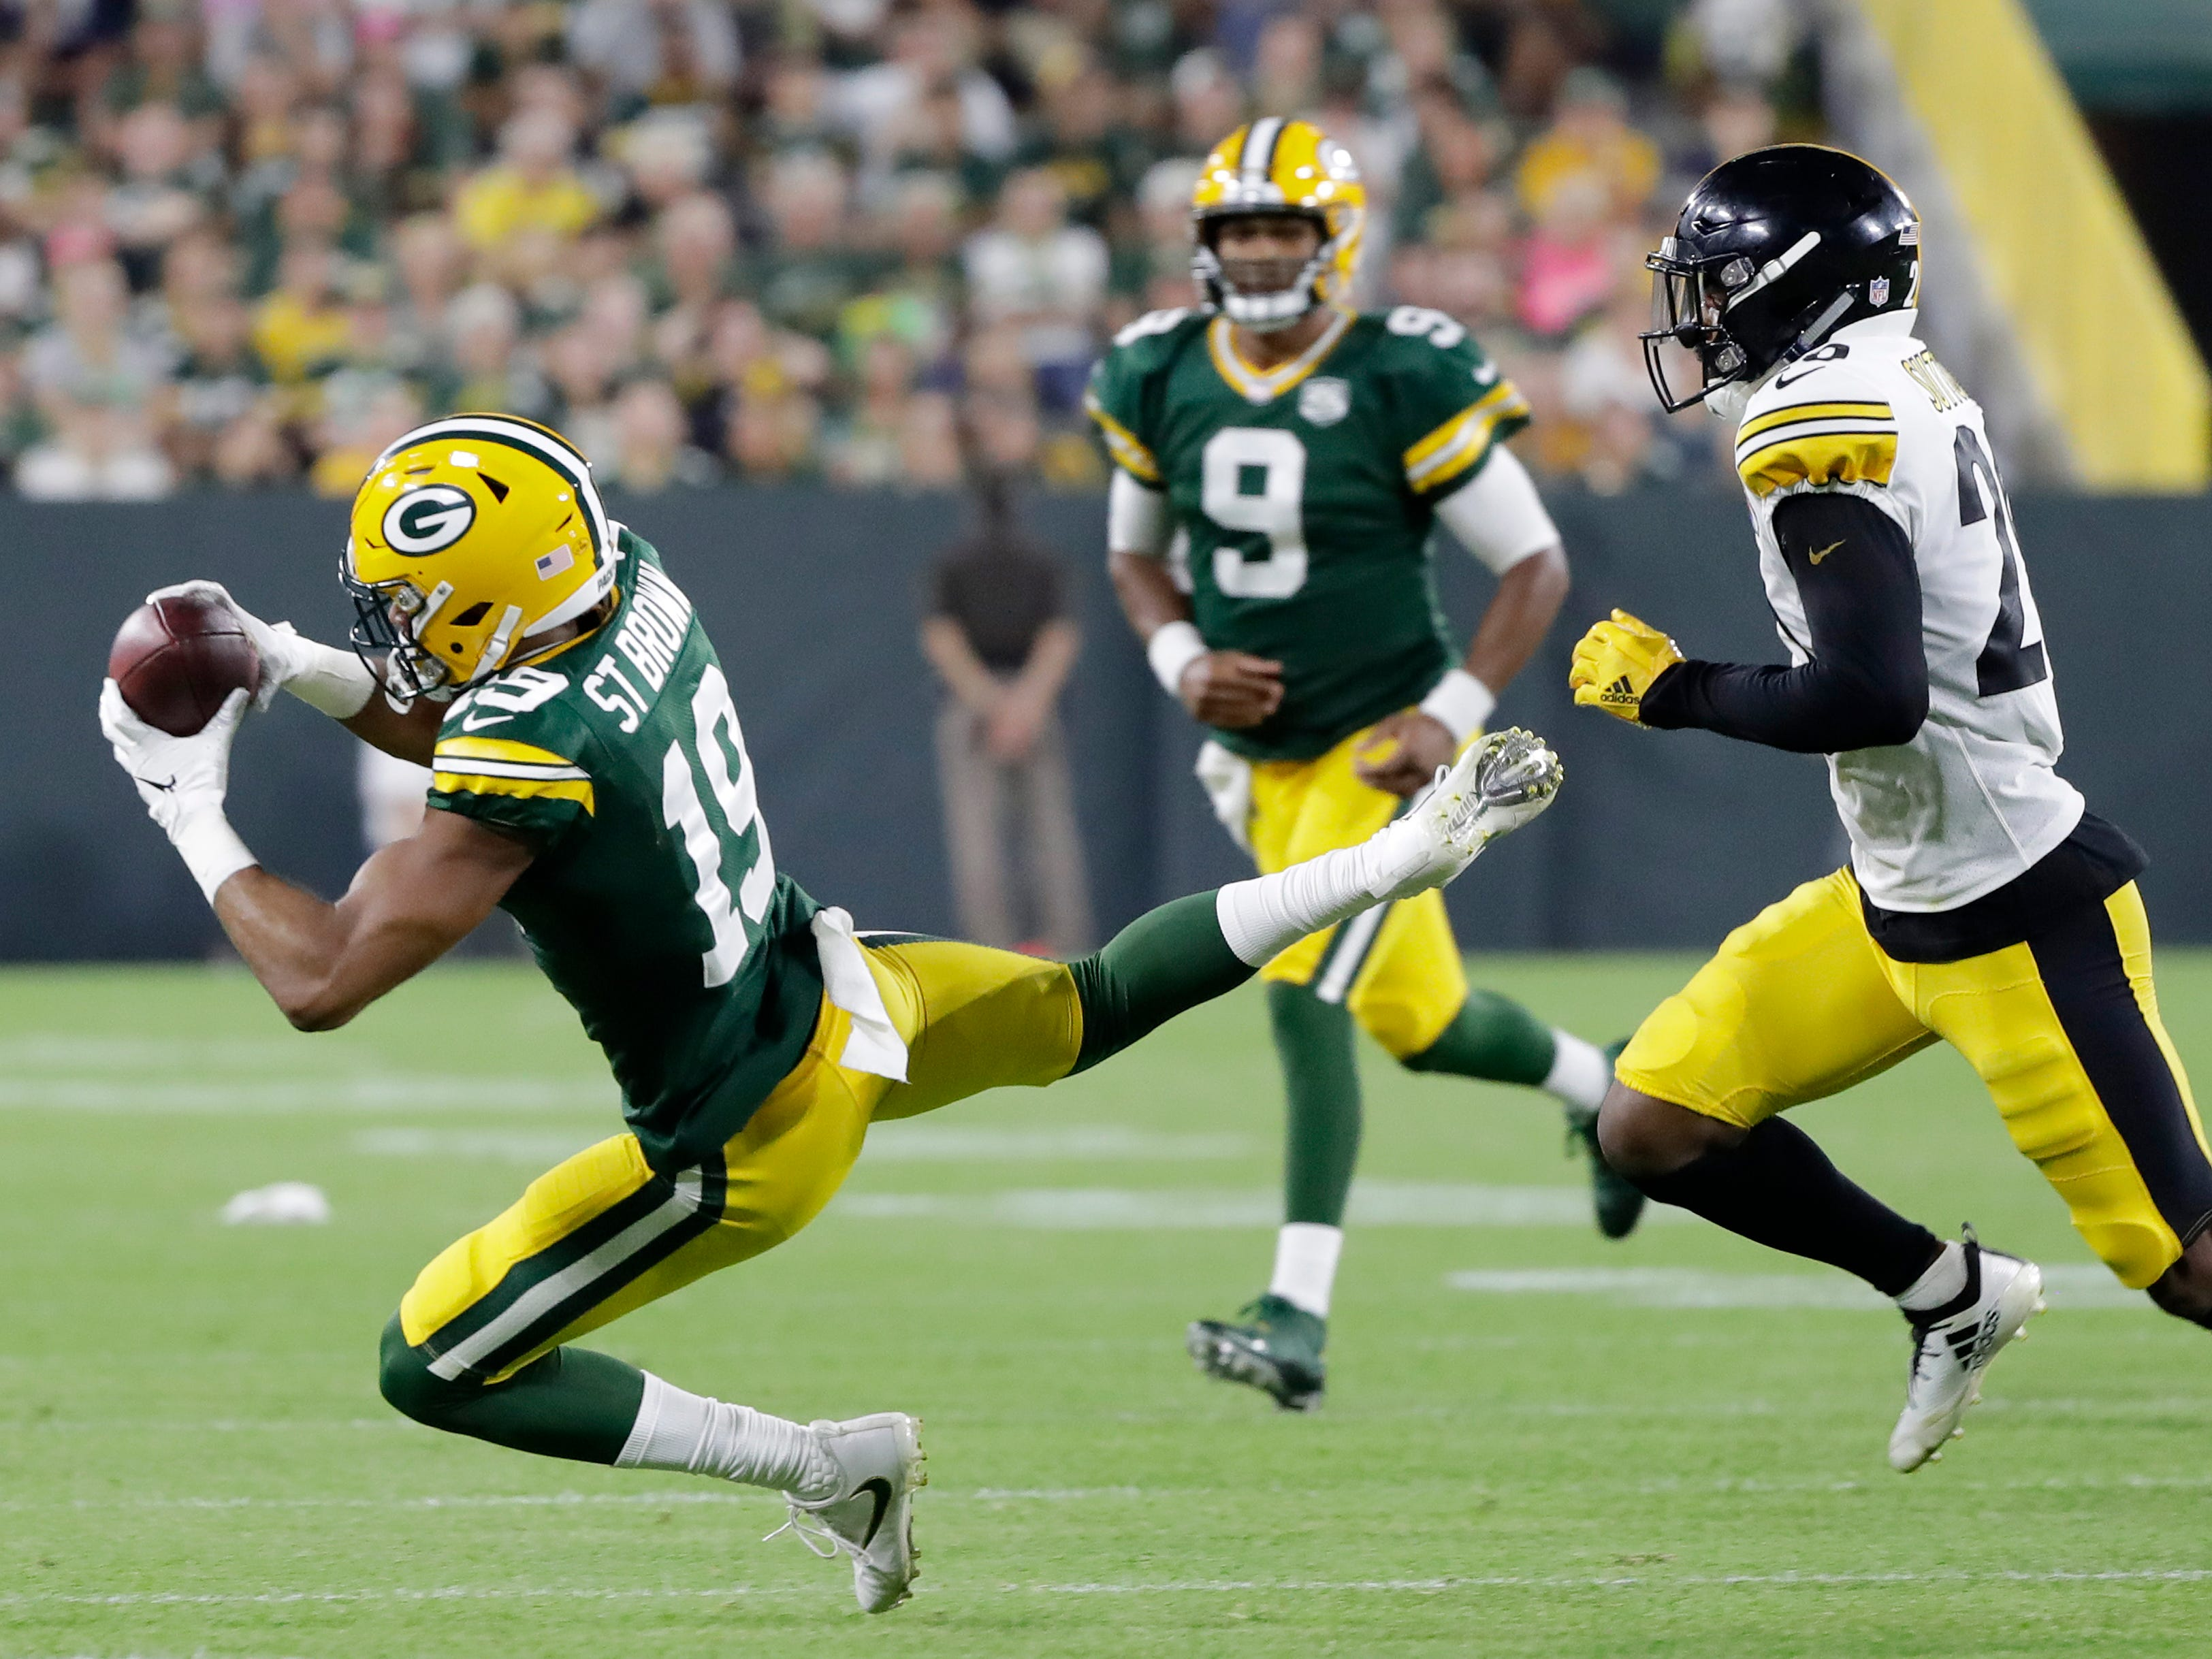 Green Bay Packers wide receiver Equanimeous St. Brown (19) catches a pass against the Pittsburgh Steelers in the second quarter of an NFL preseason game at Lambeau Field on Thursday, August 16, 2018 in Green Bay, Wis.